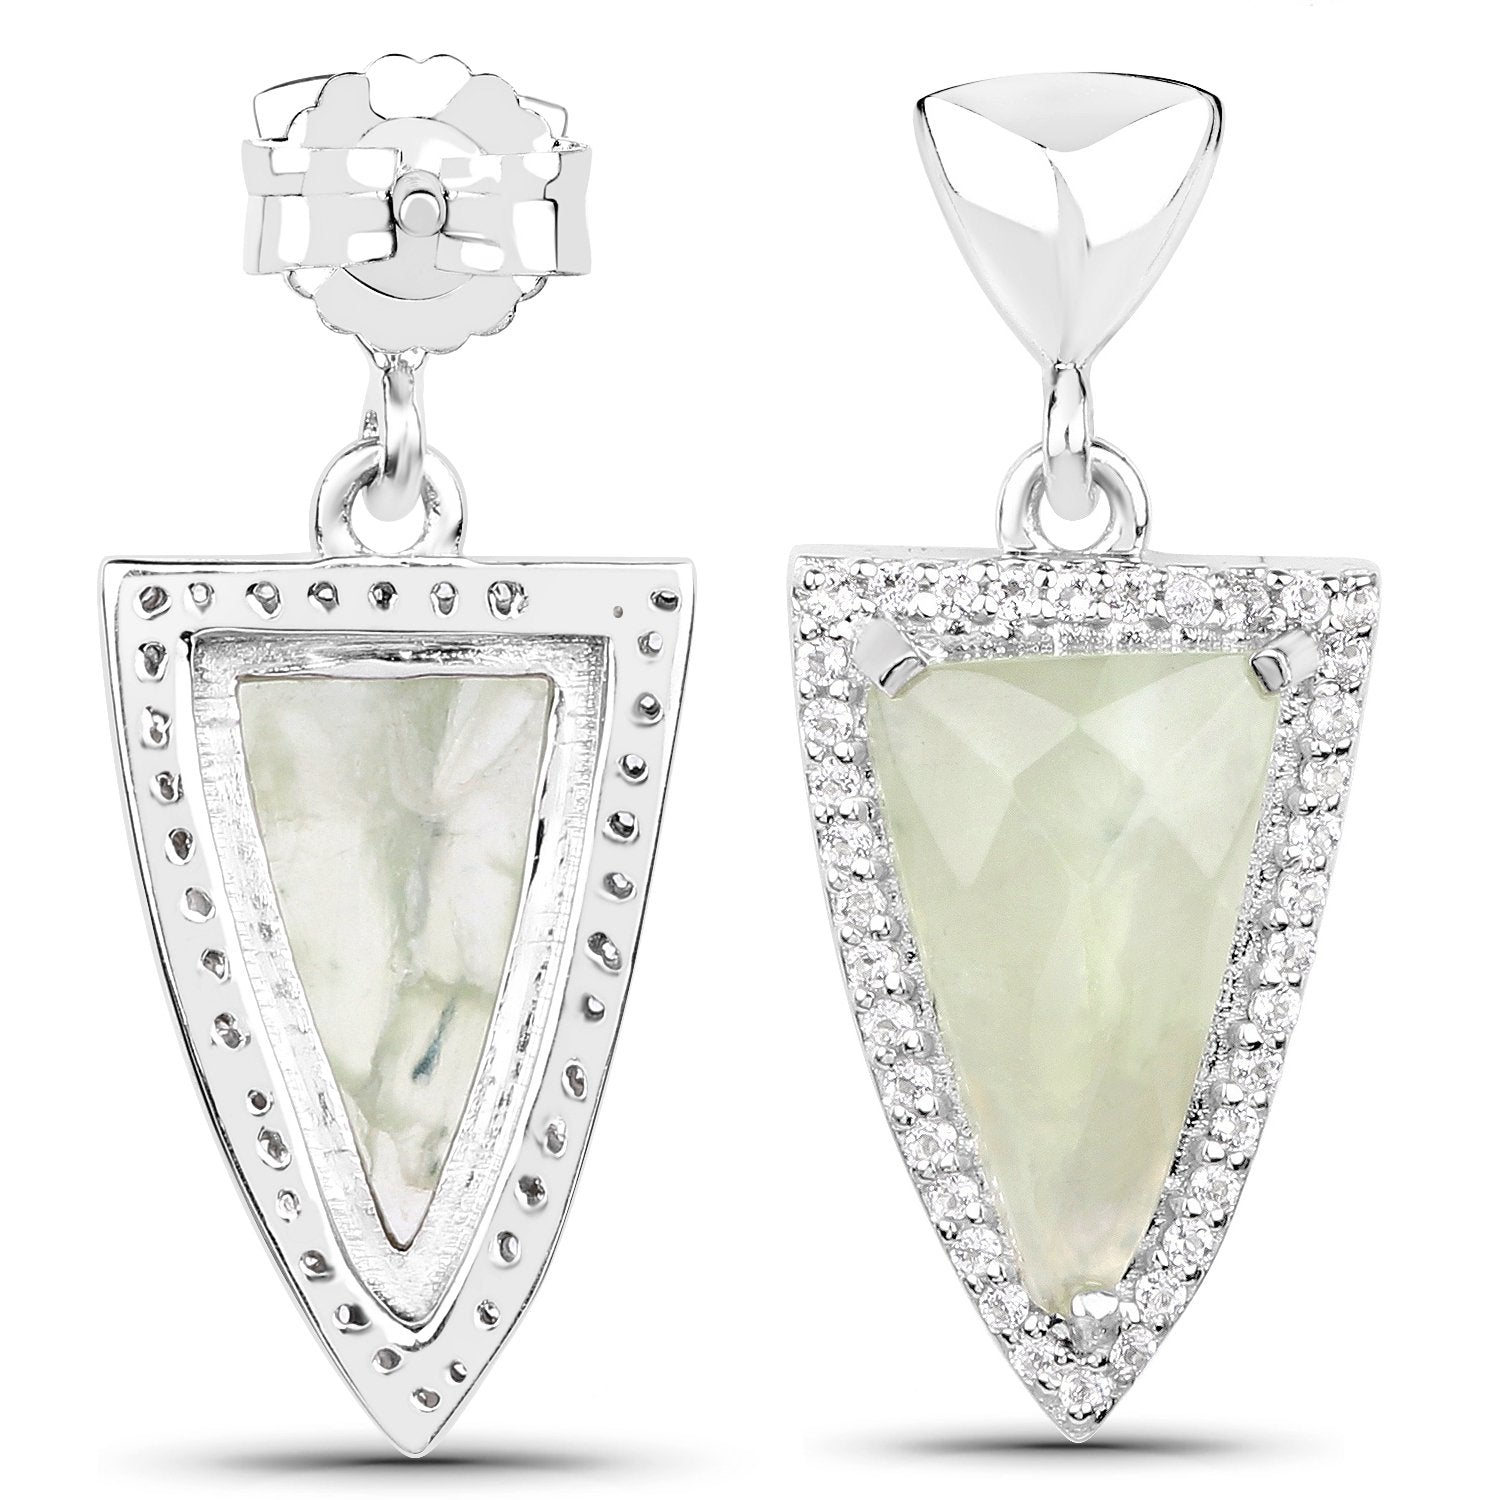 LoveHuang 4.91 Carats Genuine Prehnite and White Topaz Arrowhead Earrings Solid .925 Sterling Silver With Rhodium Plating